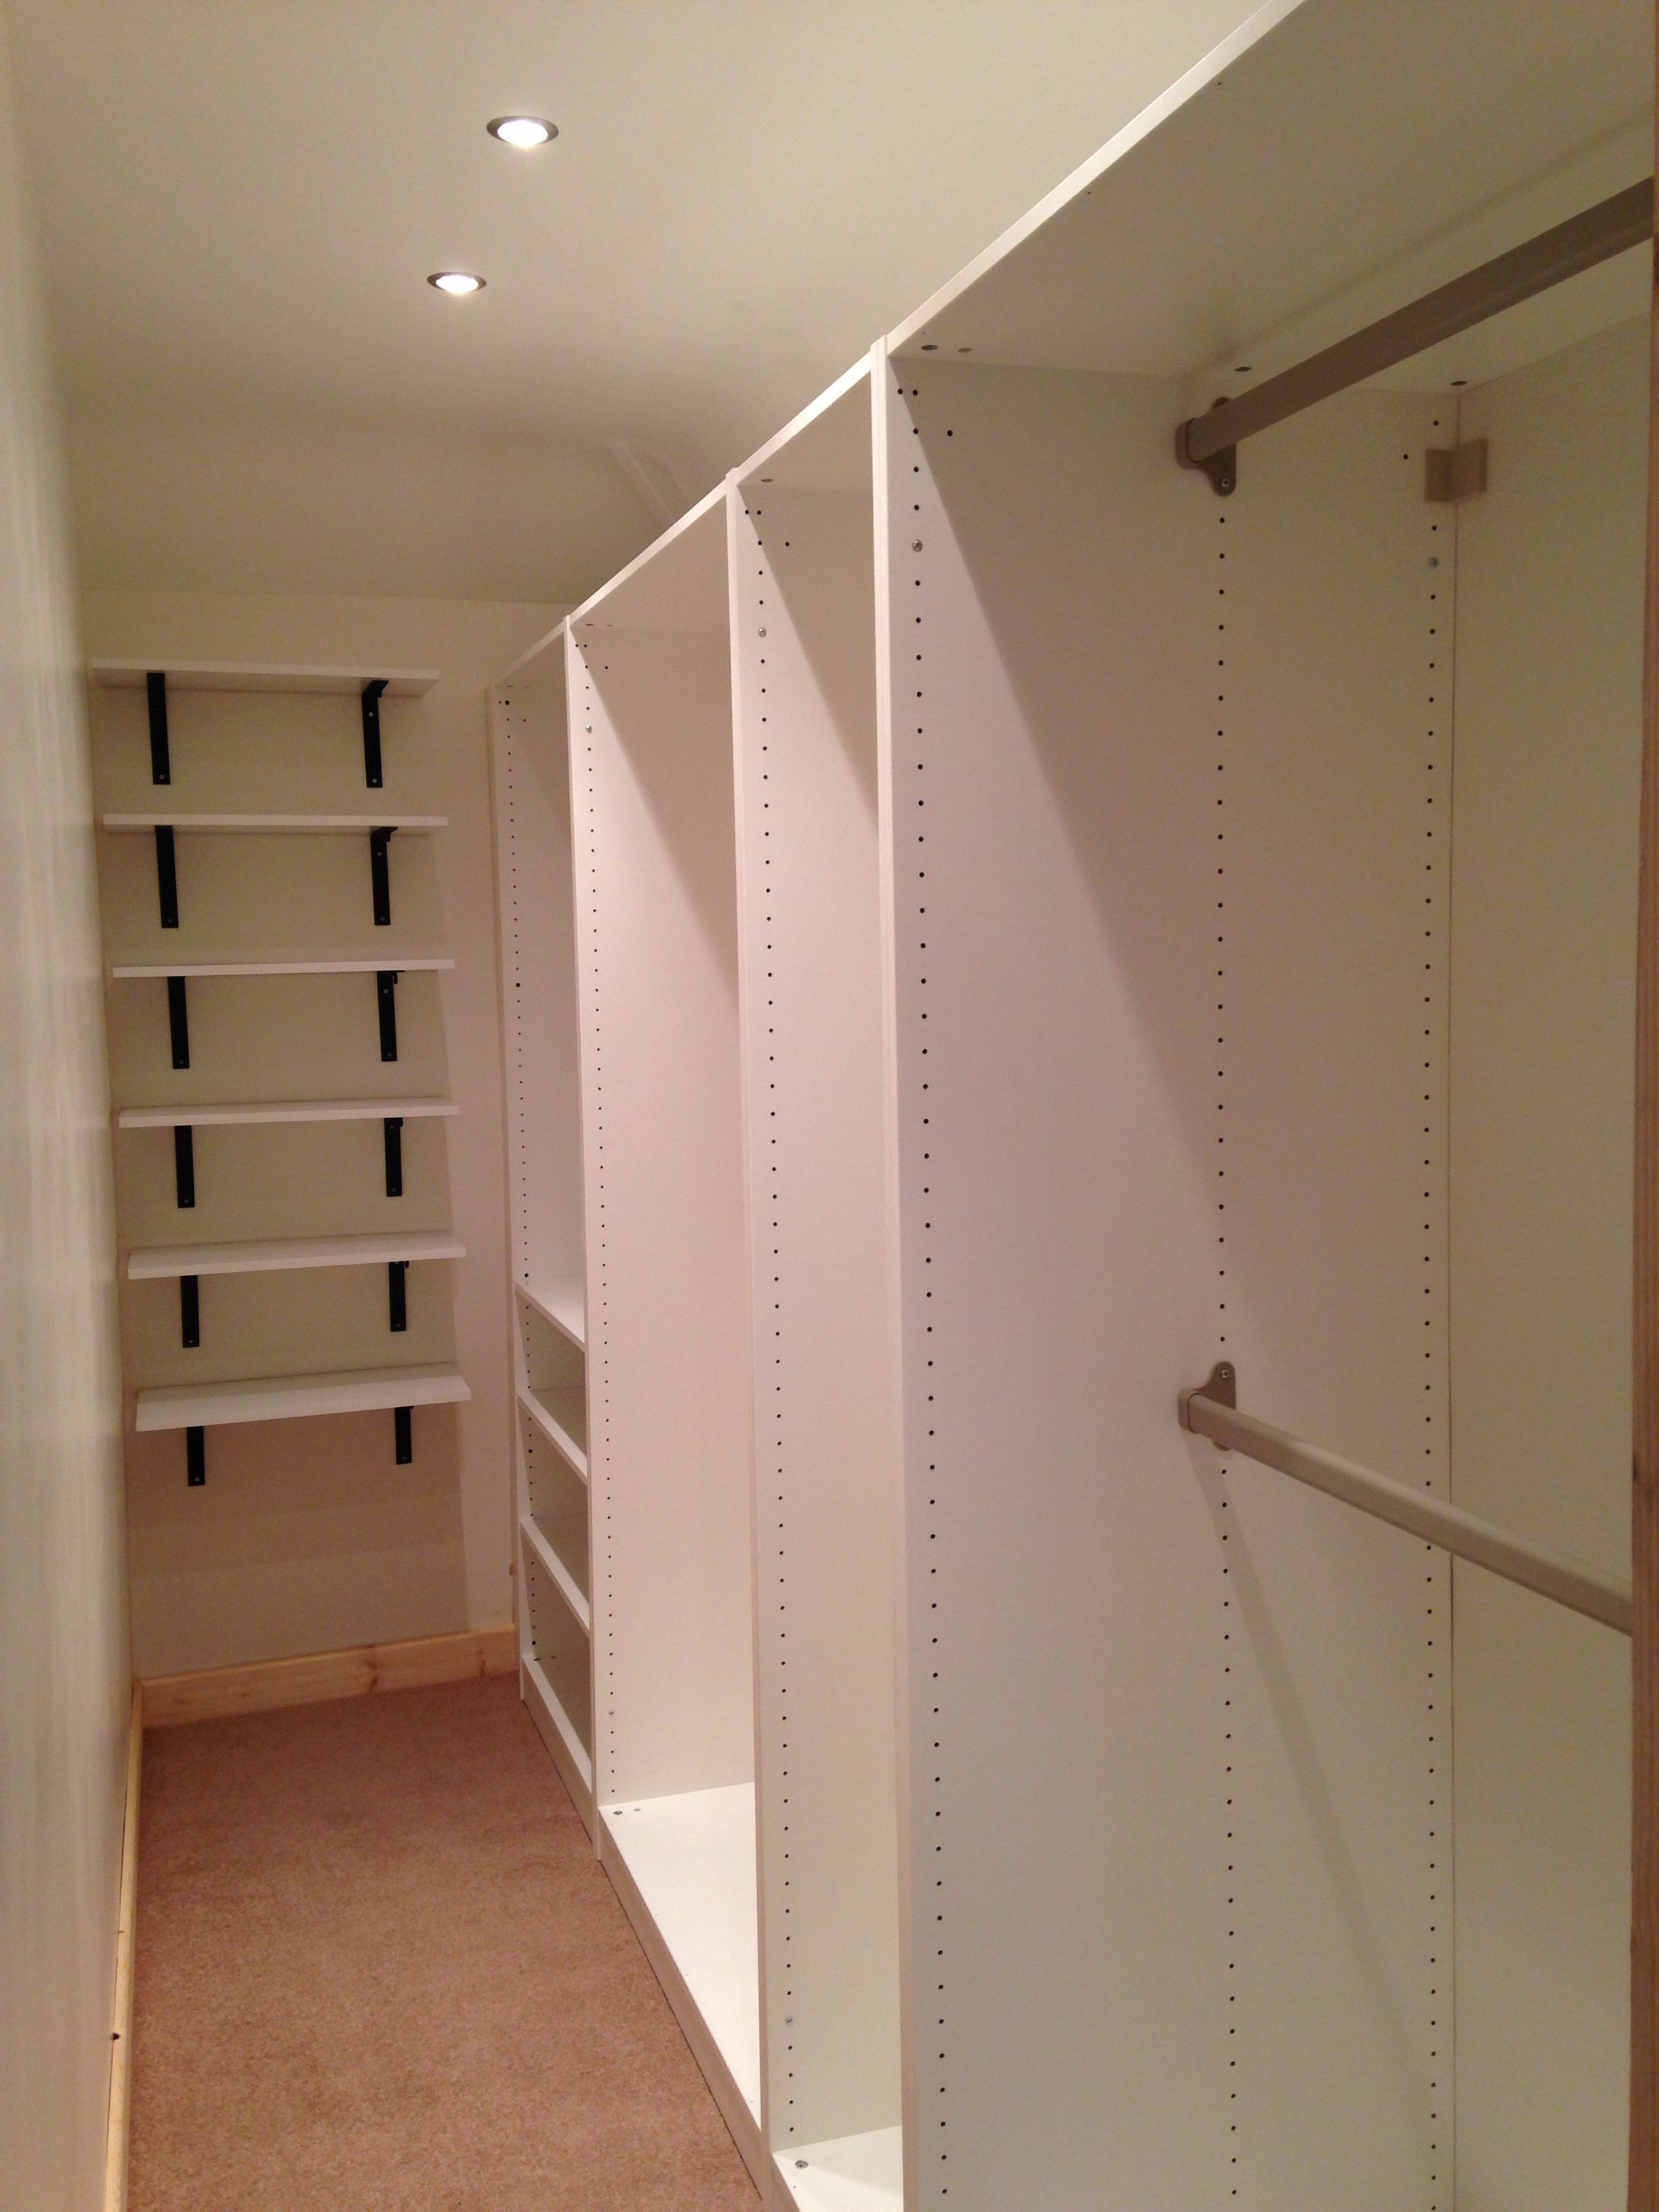 Ikea Pax Badezimmer Small Walk In Wardrobe Oh The Possibilities Home